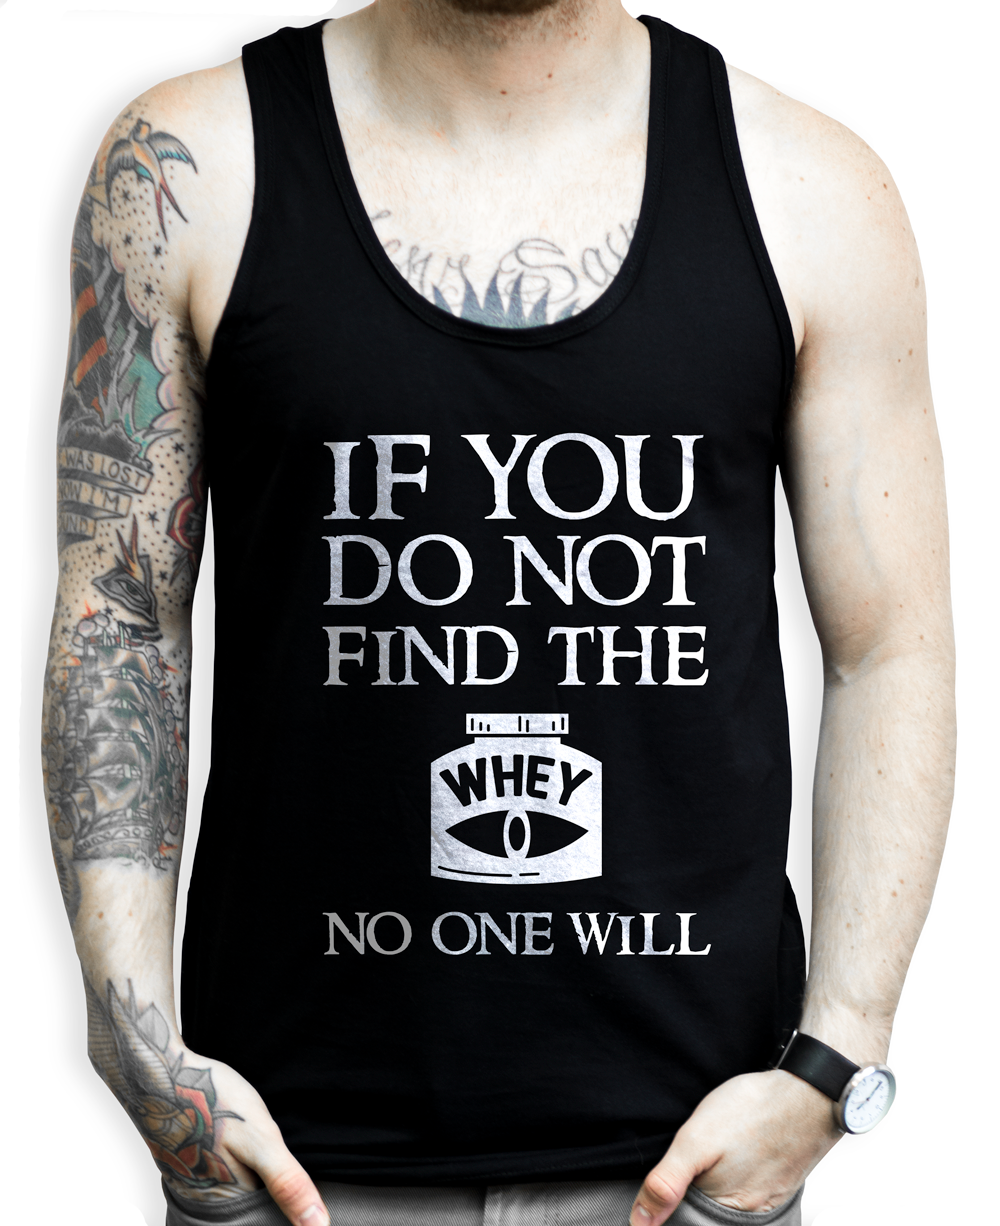 If You Do Not Find the Whey, No One Will on a (Black) Unisex Tank Top